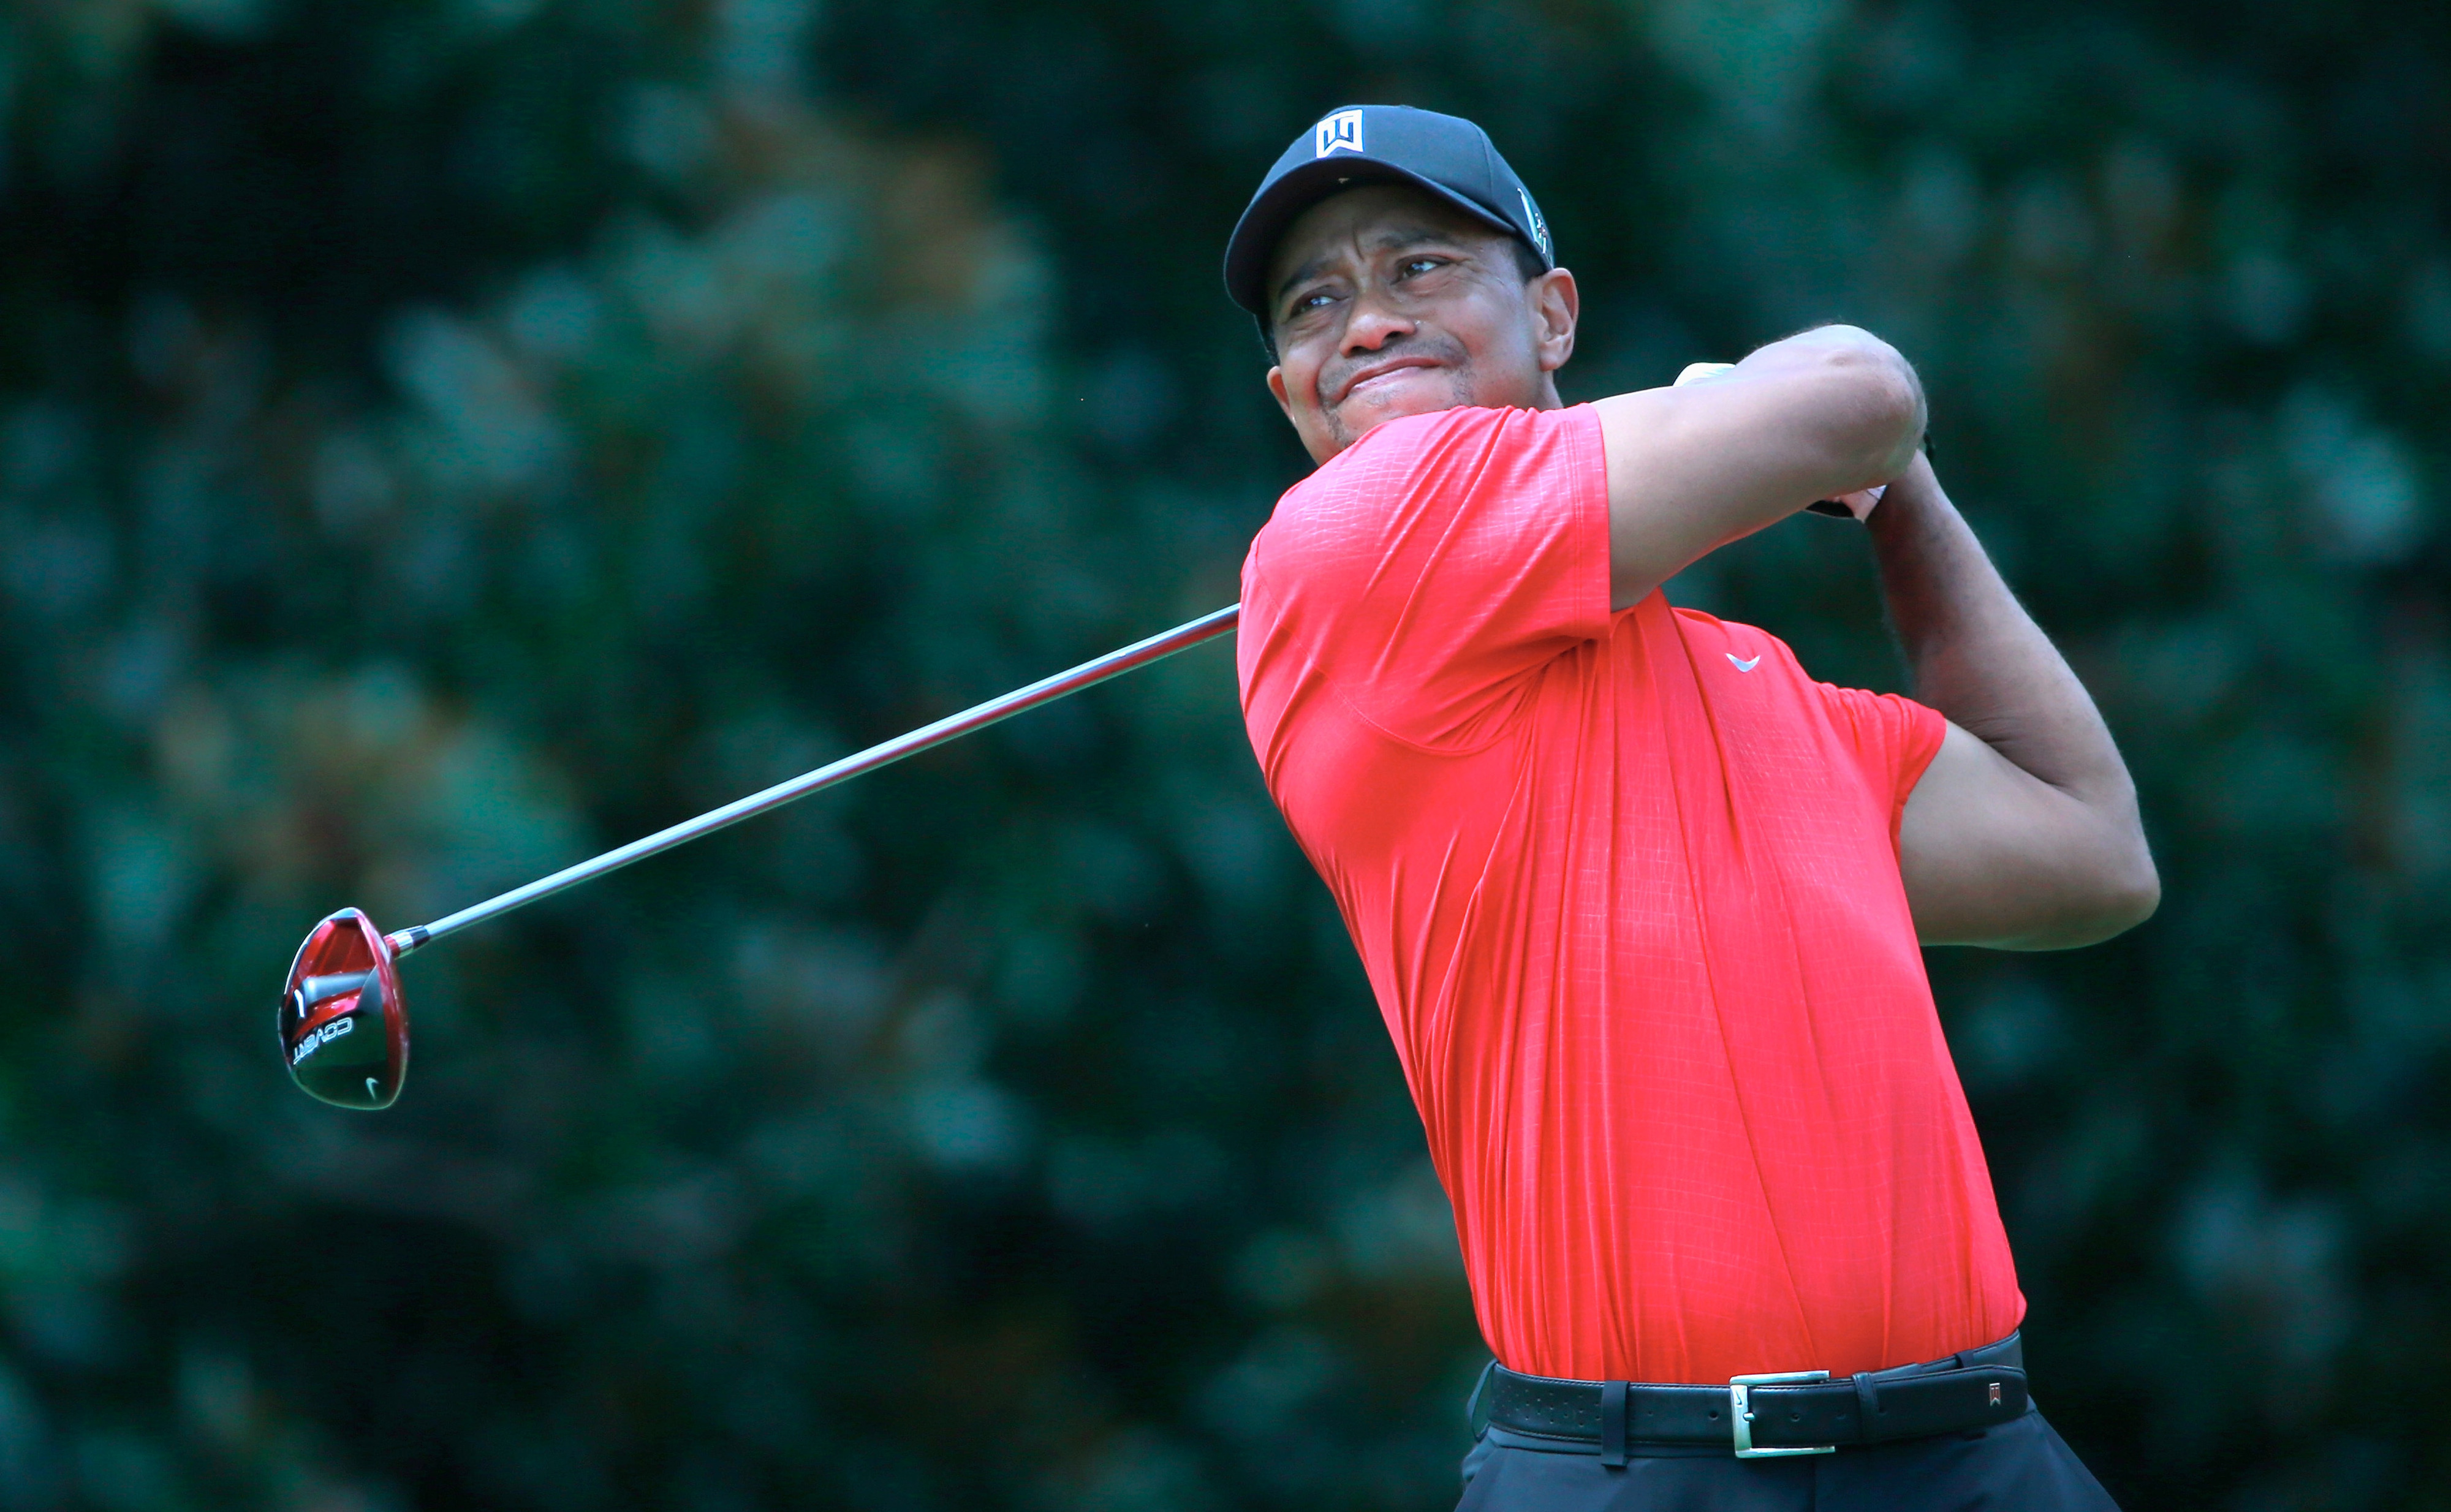 Tiger Woods is PGA player of the year; Tour honors next?